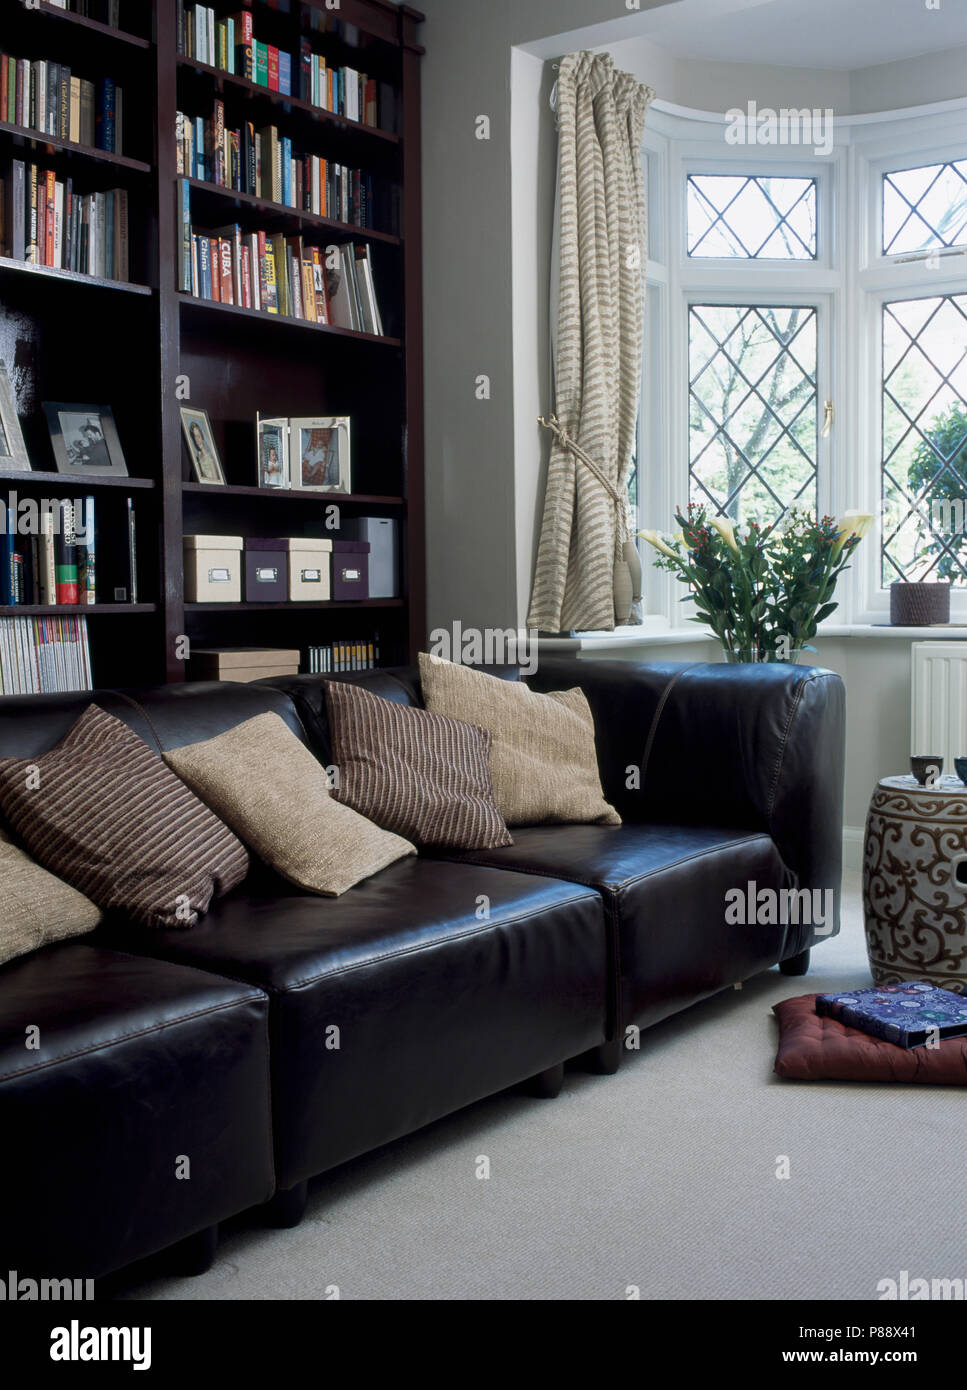 Black Leather Sofa With Cream Cushions In Front Of Black Bookshelves